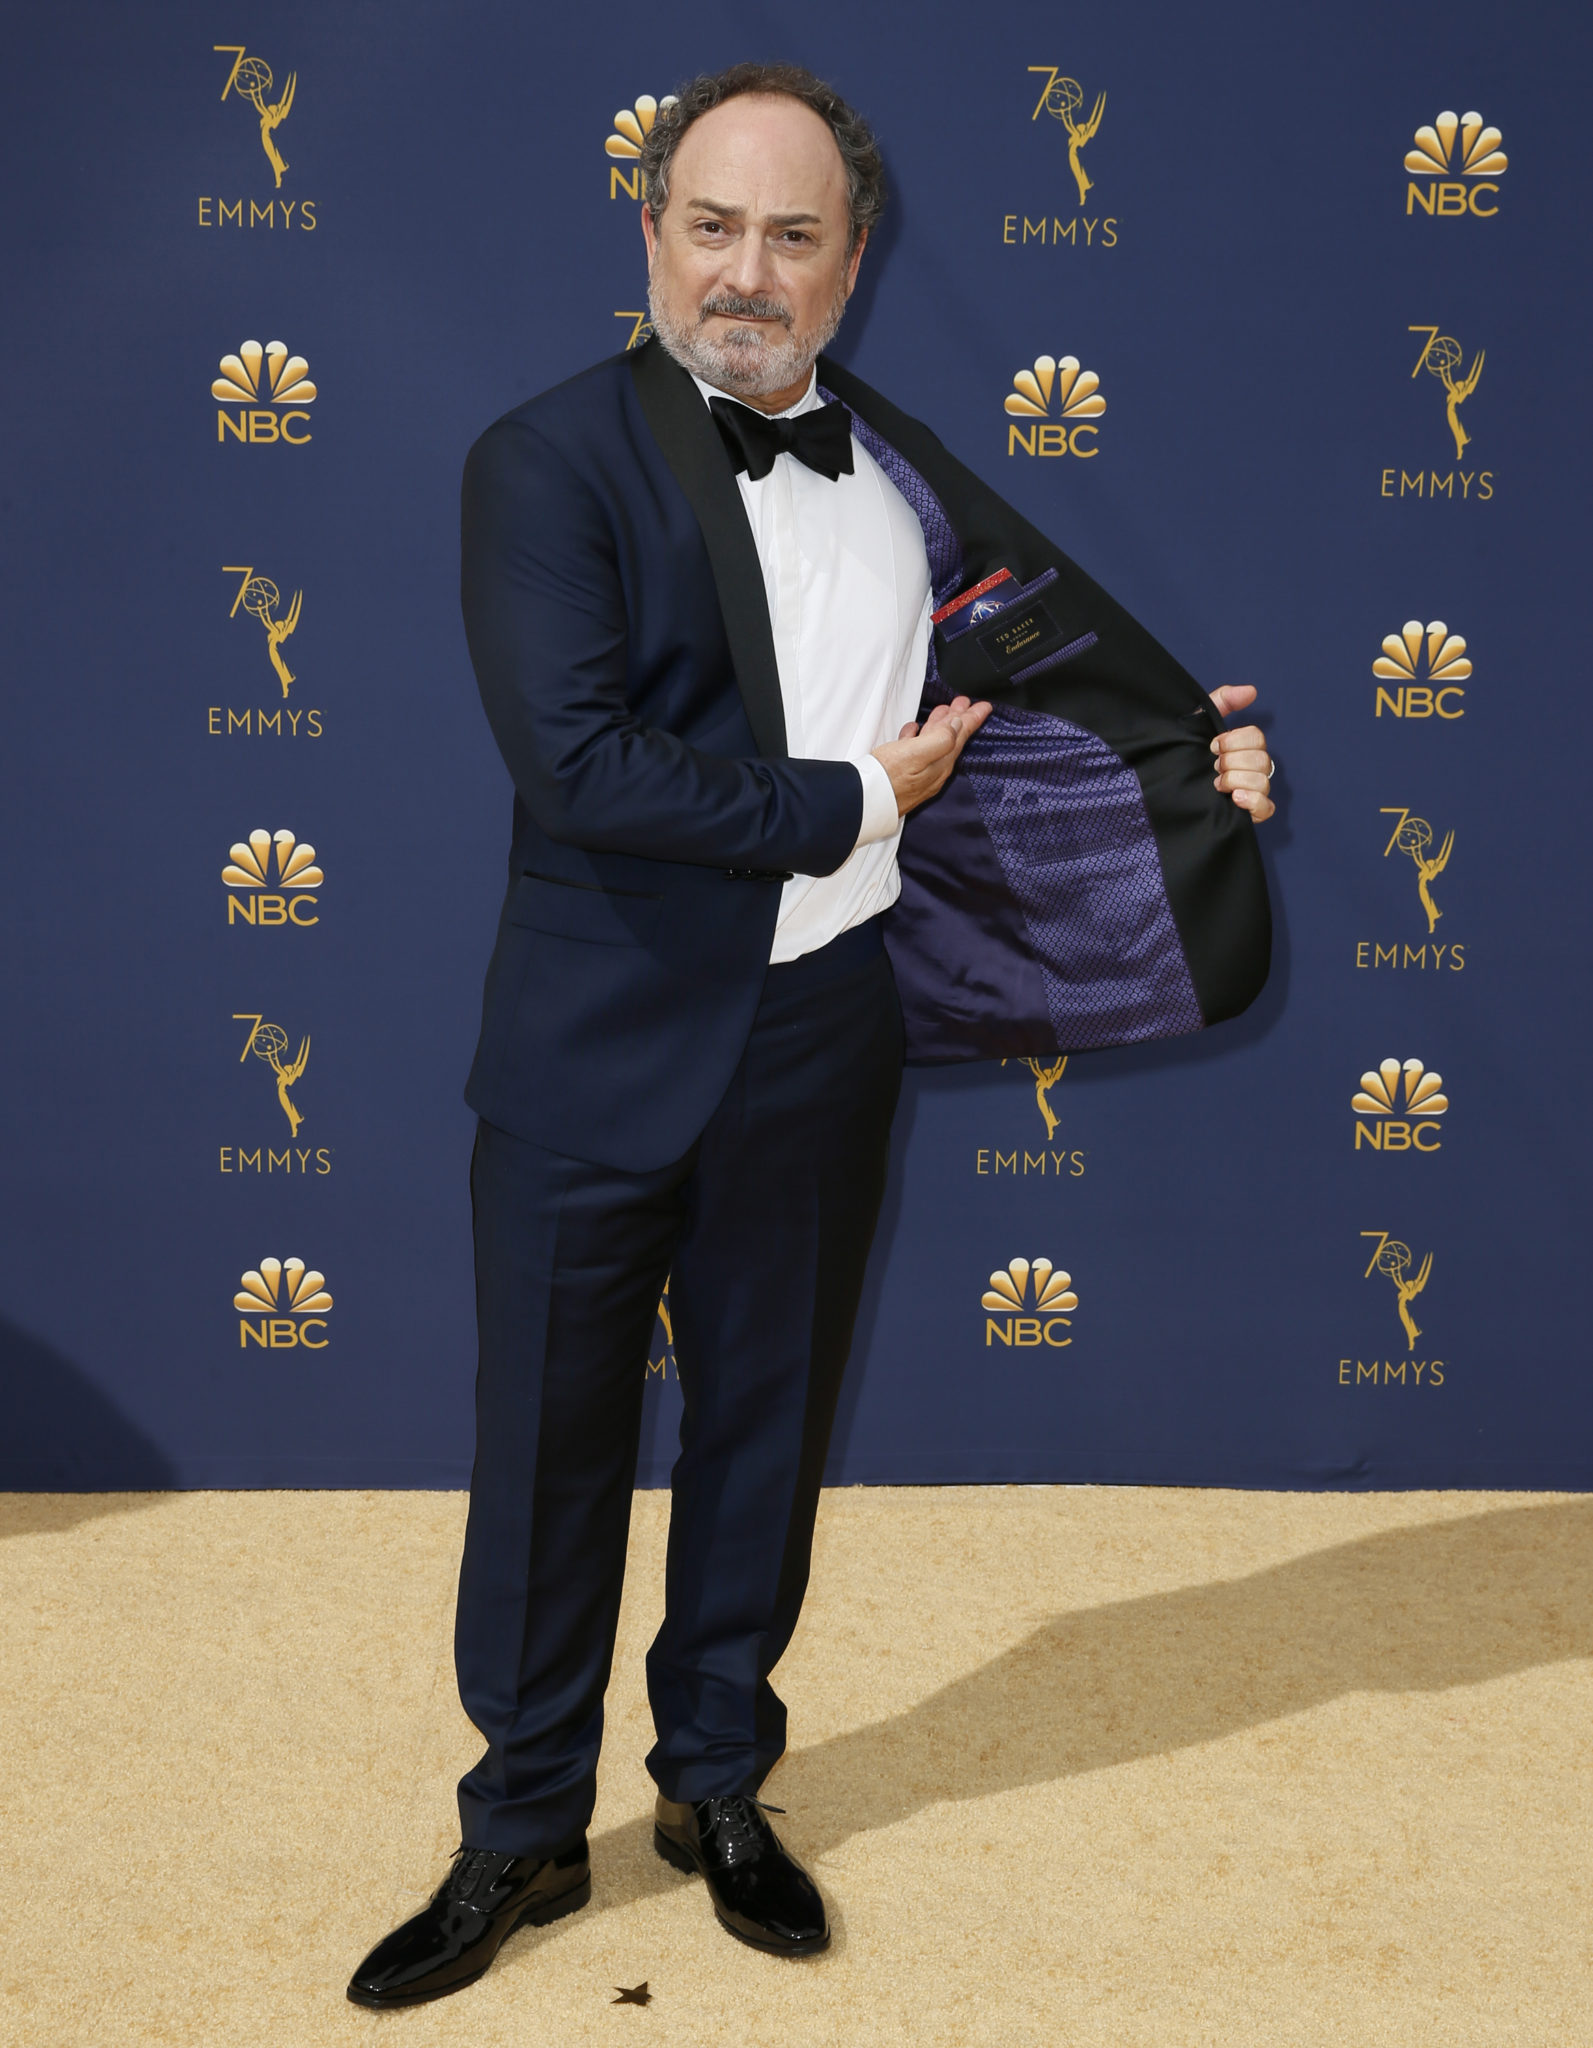 Kevin Pollak Emmys 4Chion Lifestyle